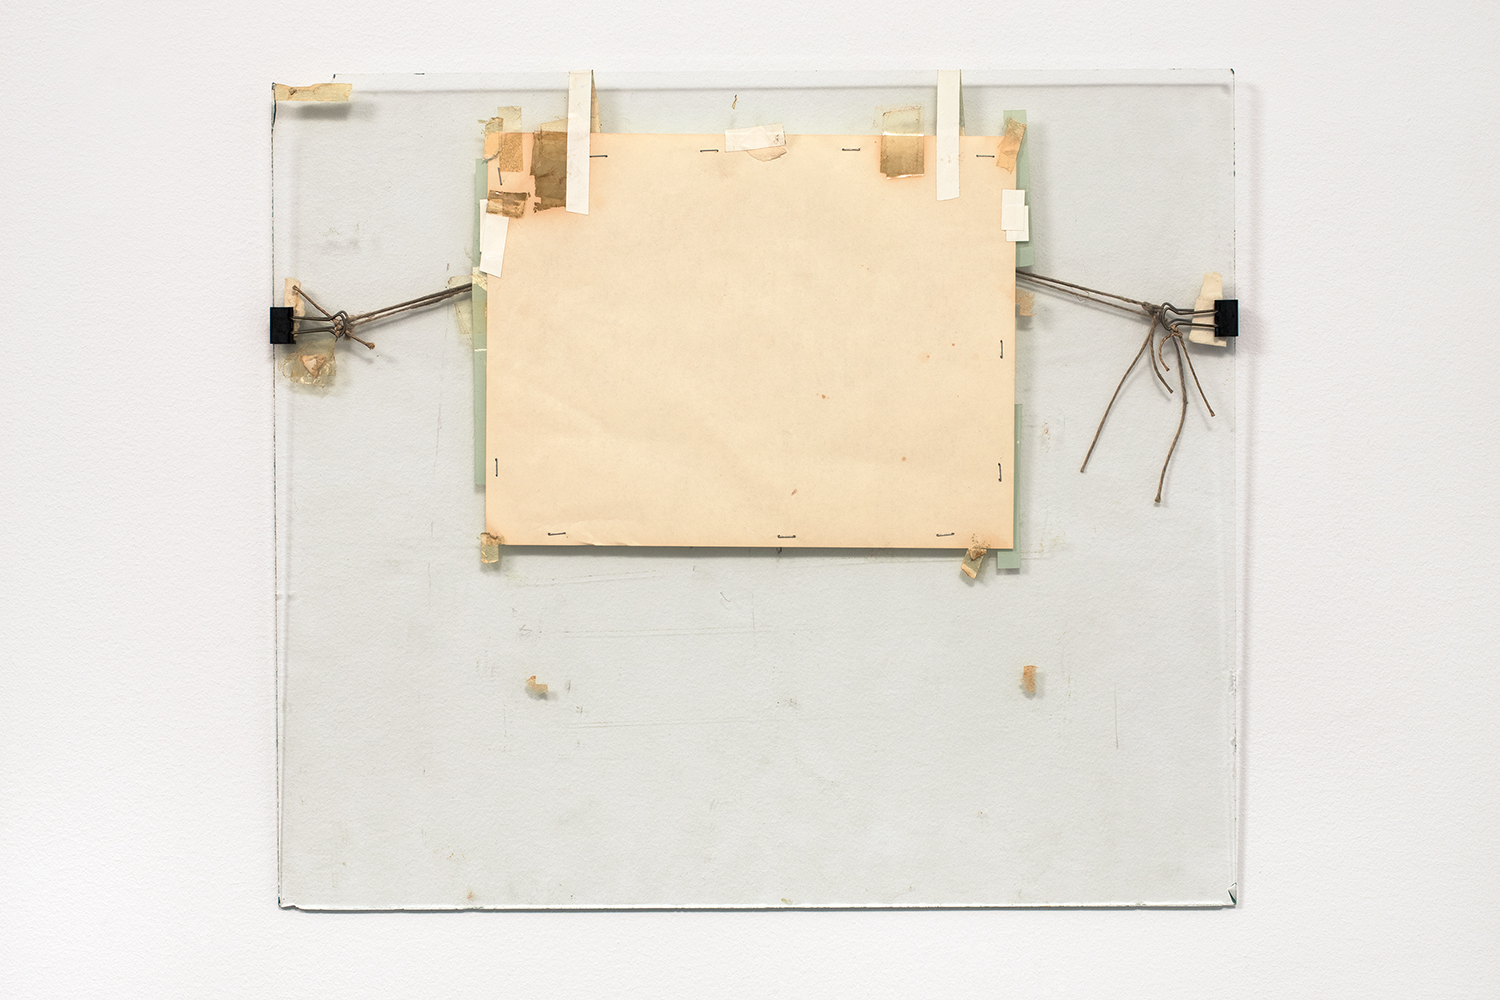 Nahum Tevet, Untitled #5, 1972. Paper, binder clips, twine, staples, plastic tape, masking tape, transparent tape, and wax pencil on glass, 17 3/16 x 19 3/4 x 7/16 in. (43.7 x 50.2 x 1.1 cm). Collection of the artist. Photo by Polite Photographic, courtesy of the Hunter College Art Galleries and the artist.